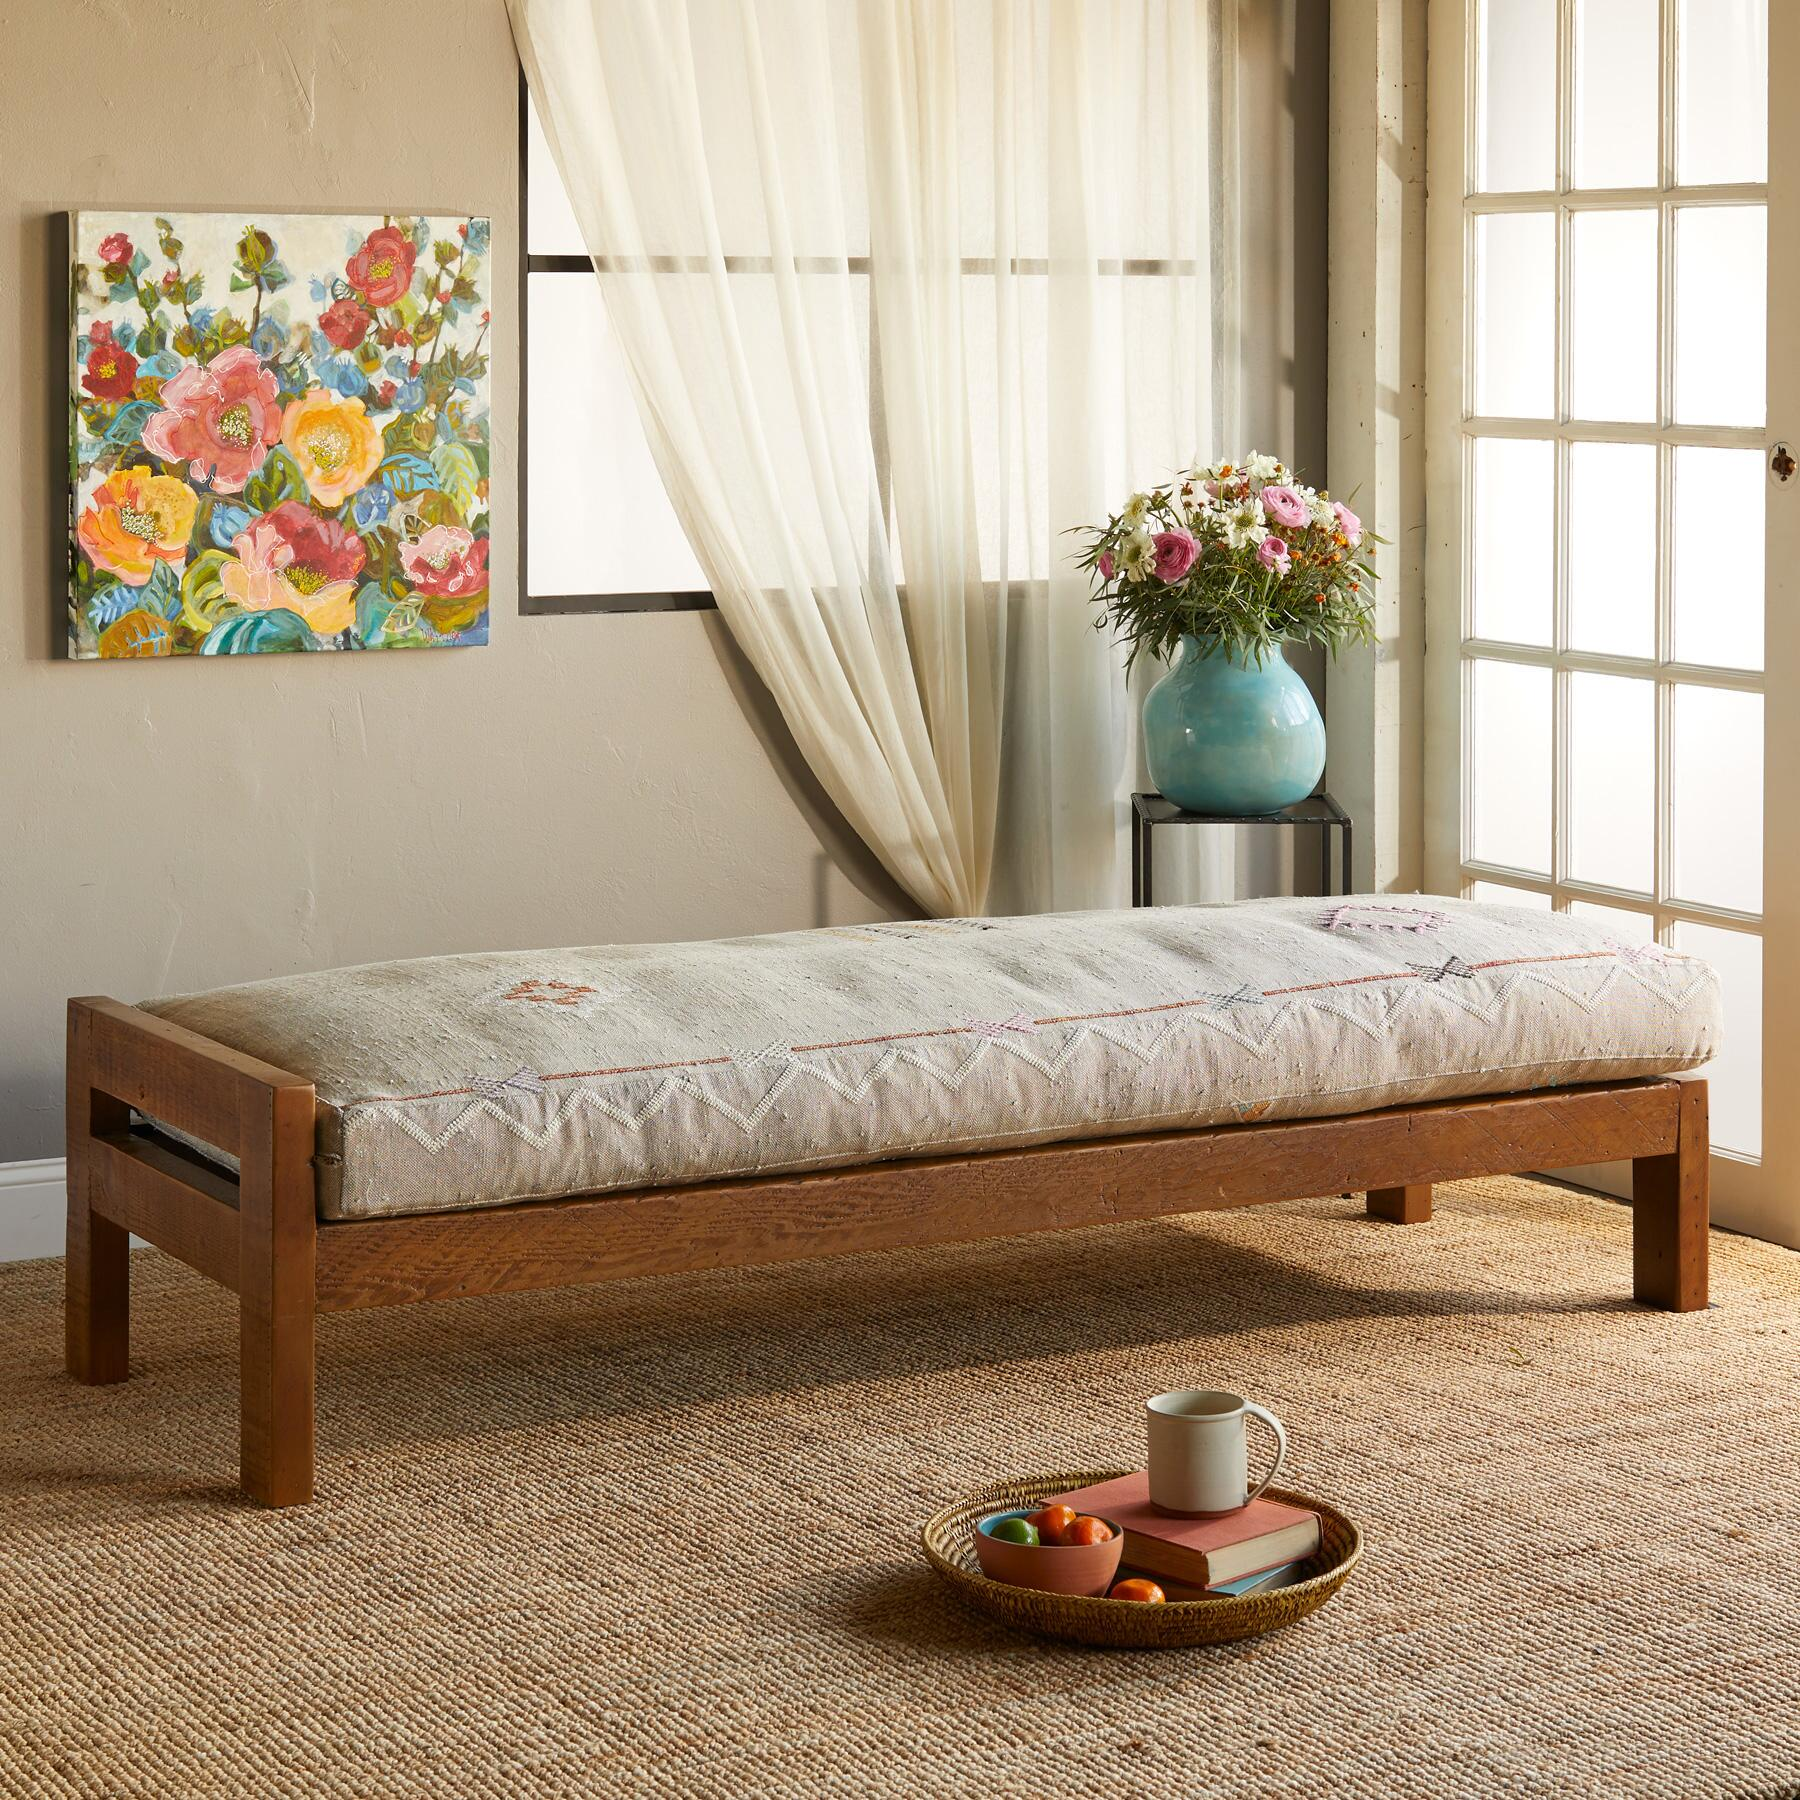 LAHRAOUYINE MOROCCAN DAY BED: View 1